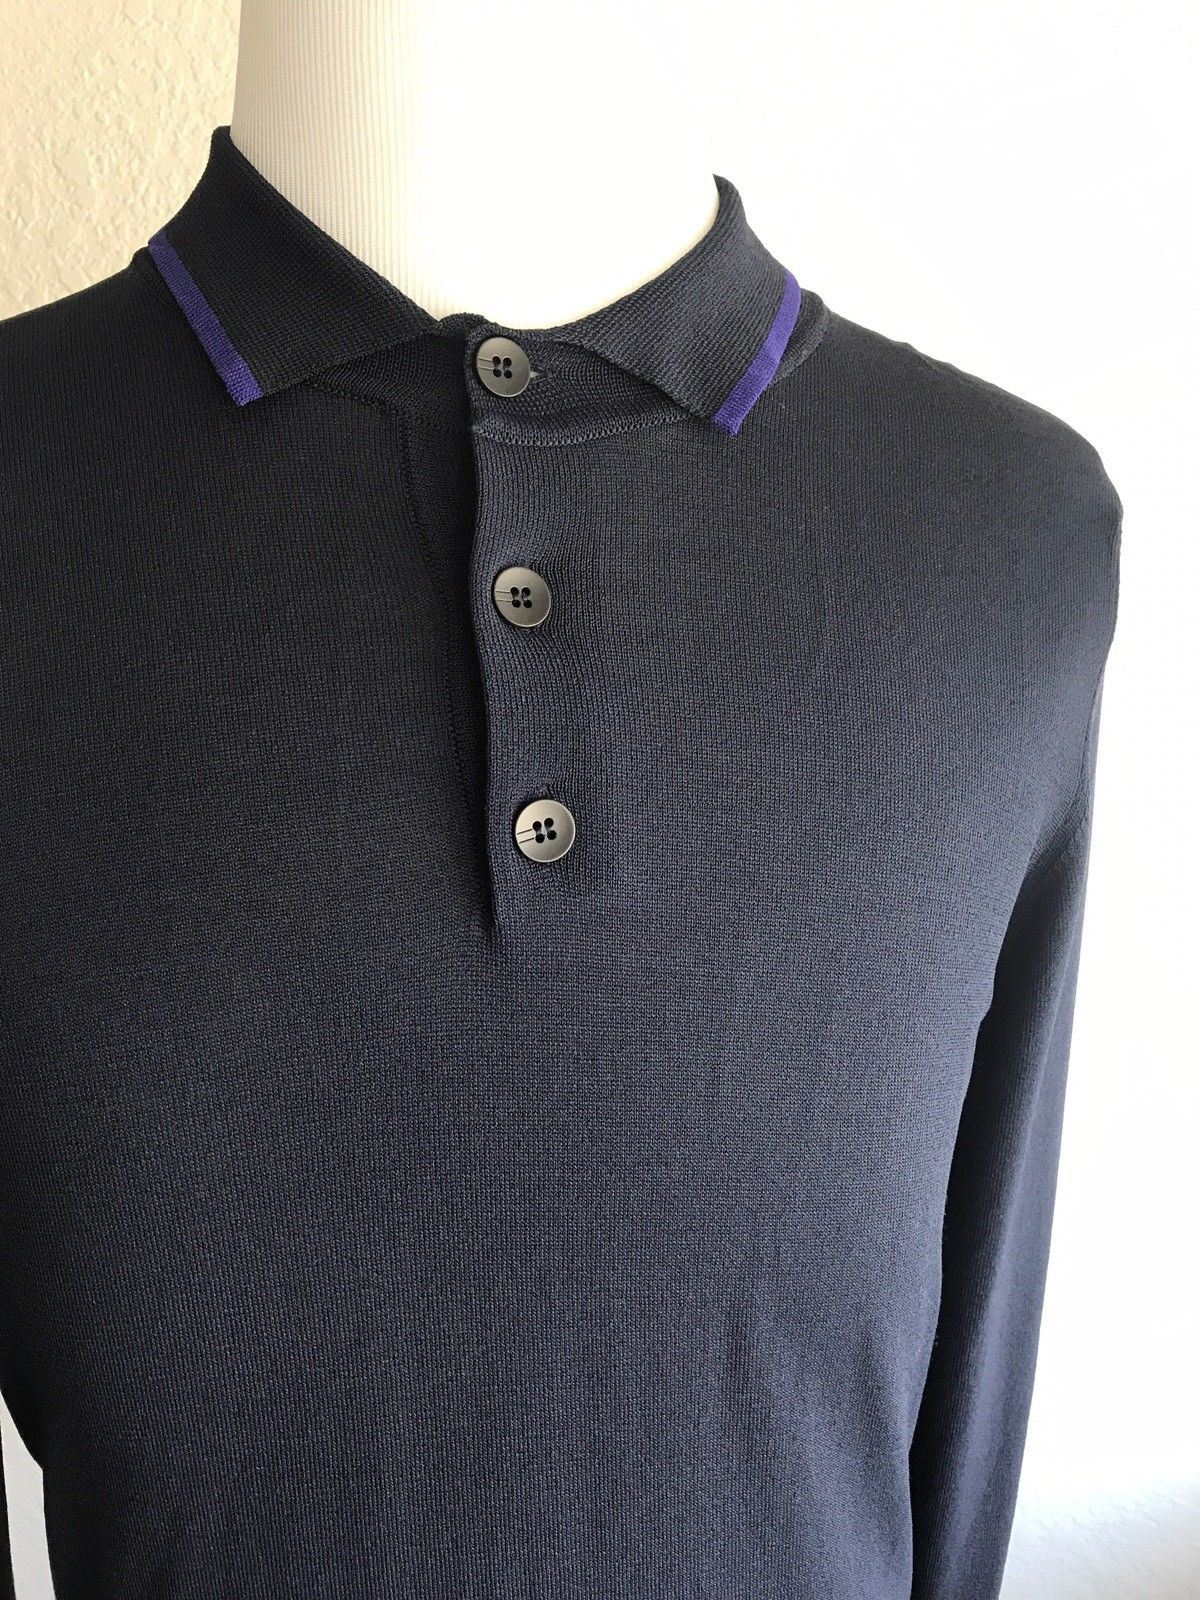 NWT $495 Armani Collezioni Blue Knit Polo Long Sleeve Sweater S (50 EU) 3YCF01